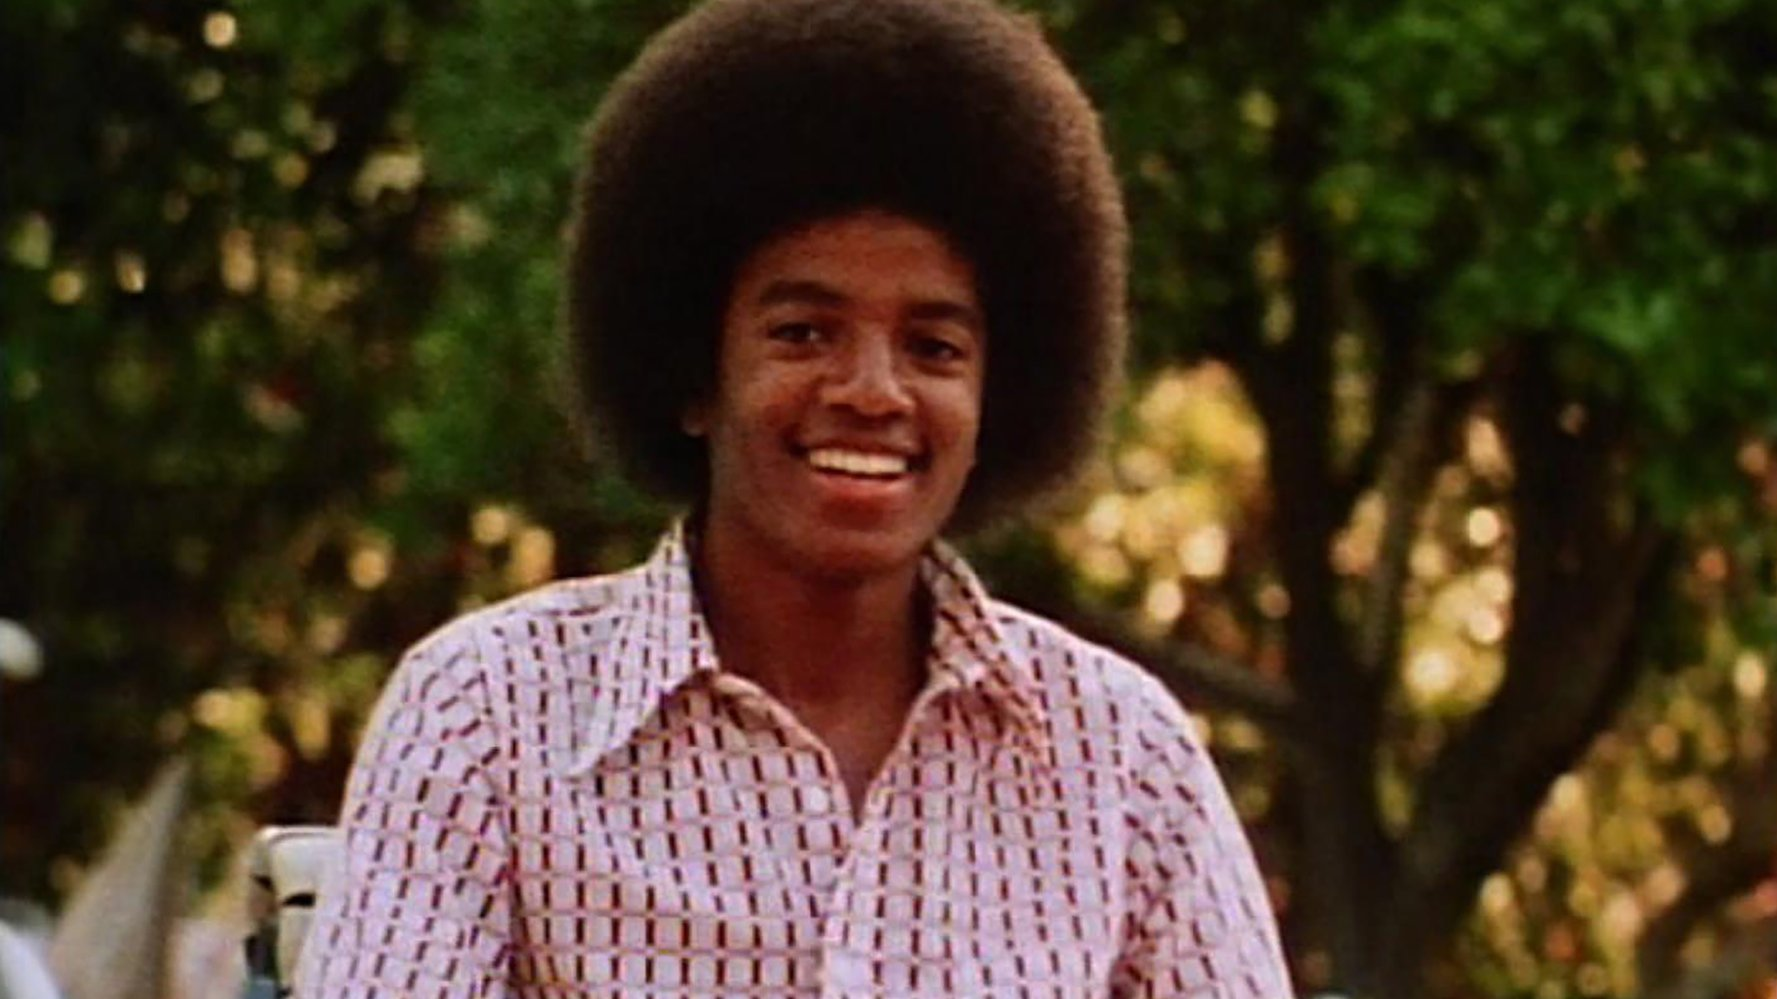 Michael Jacksons Journey from Motown to Off the Wall